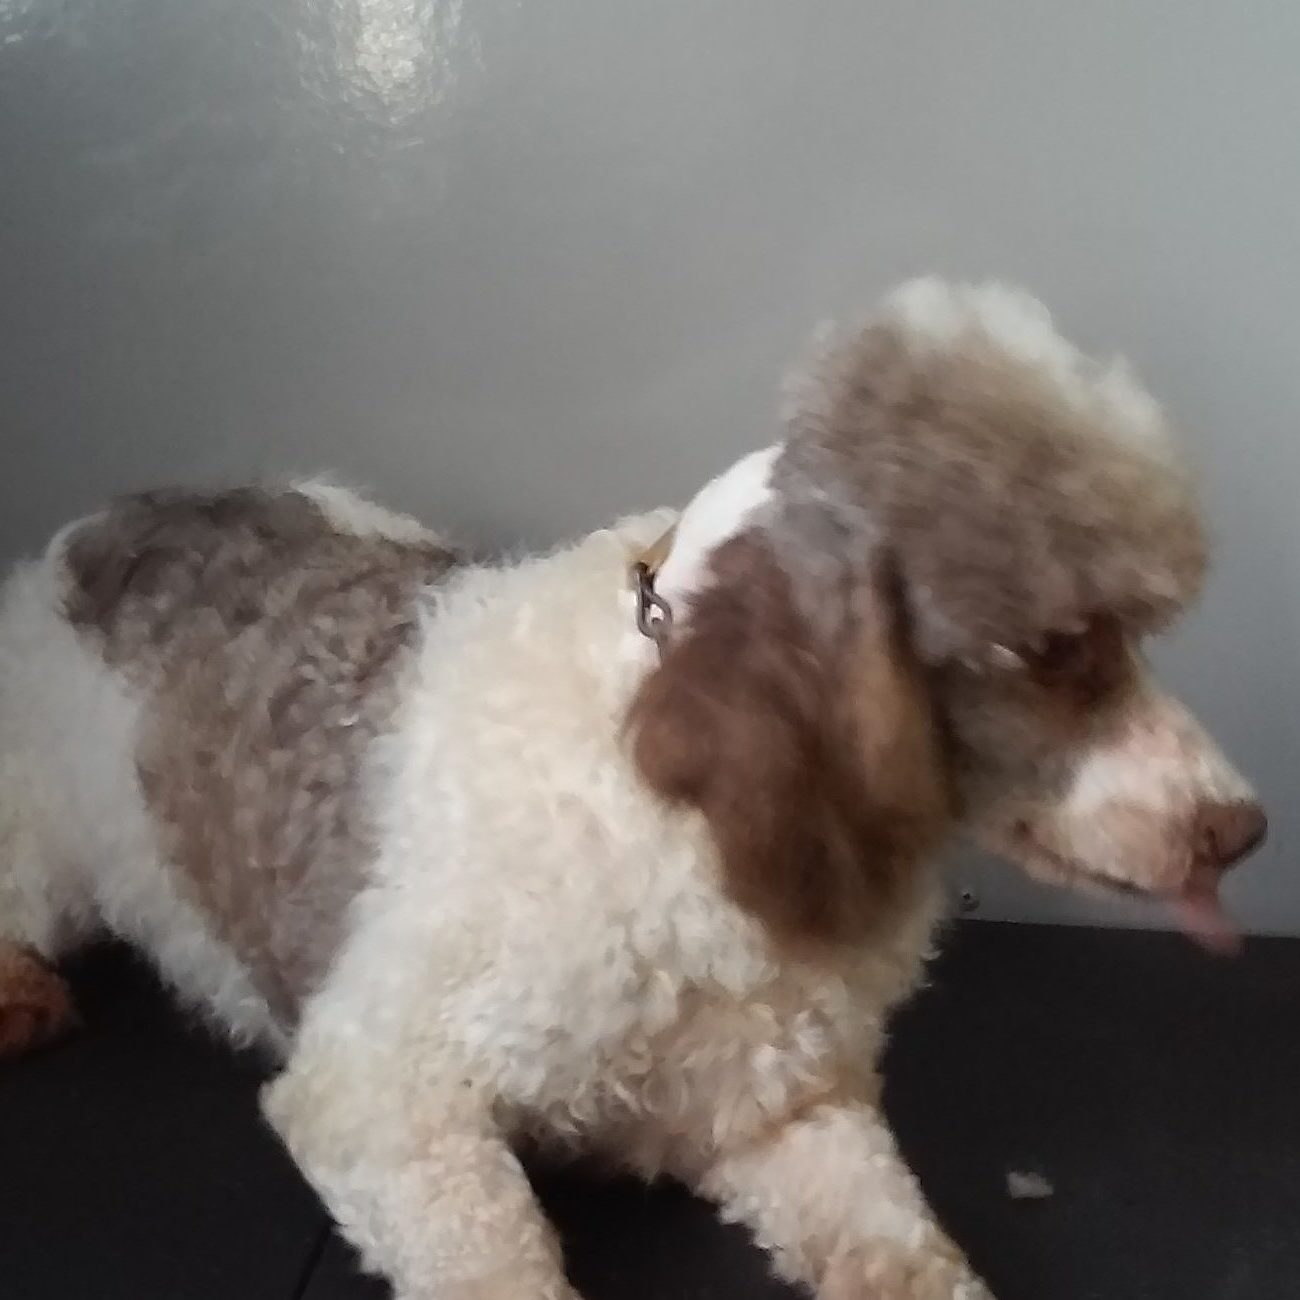 Charlie is a 12 pound miniature Male Poodle with a good personality, loves children. He is a lot of fun. He is the father of the Mini Bernedoodles.